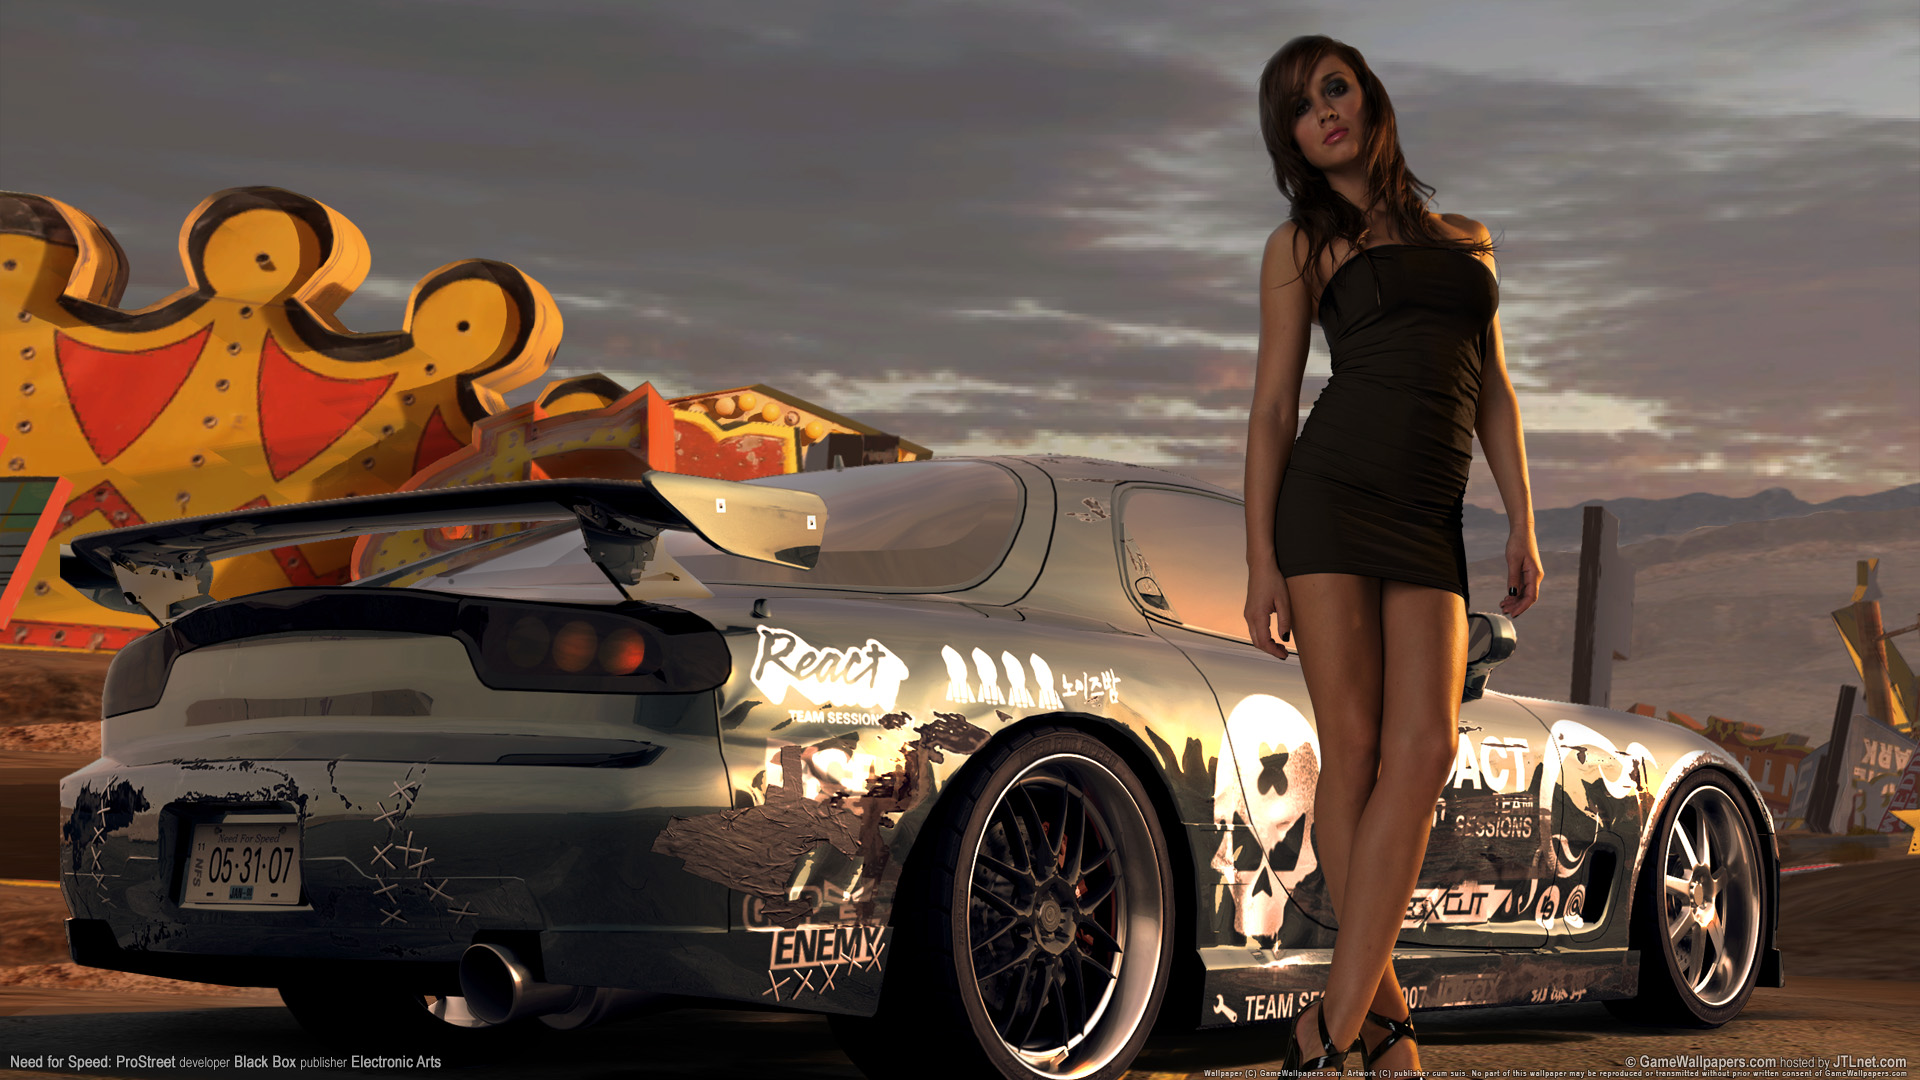 Need for speed prostreet Girls 6 825.11 Kb